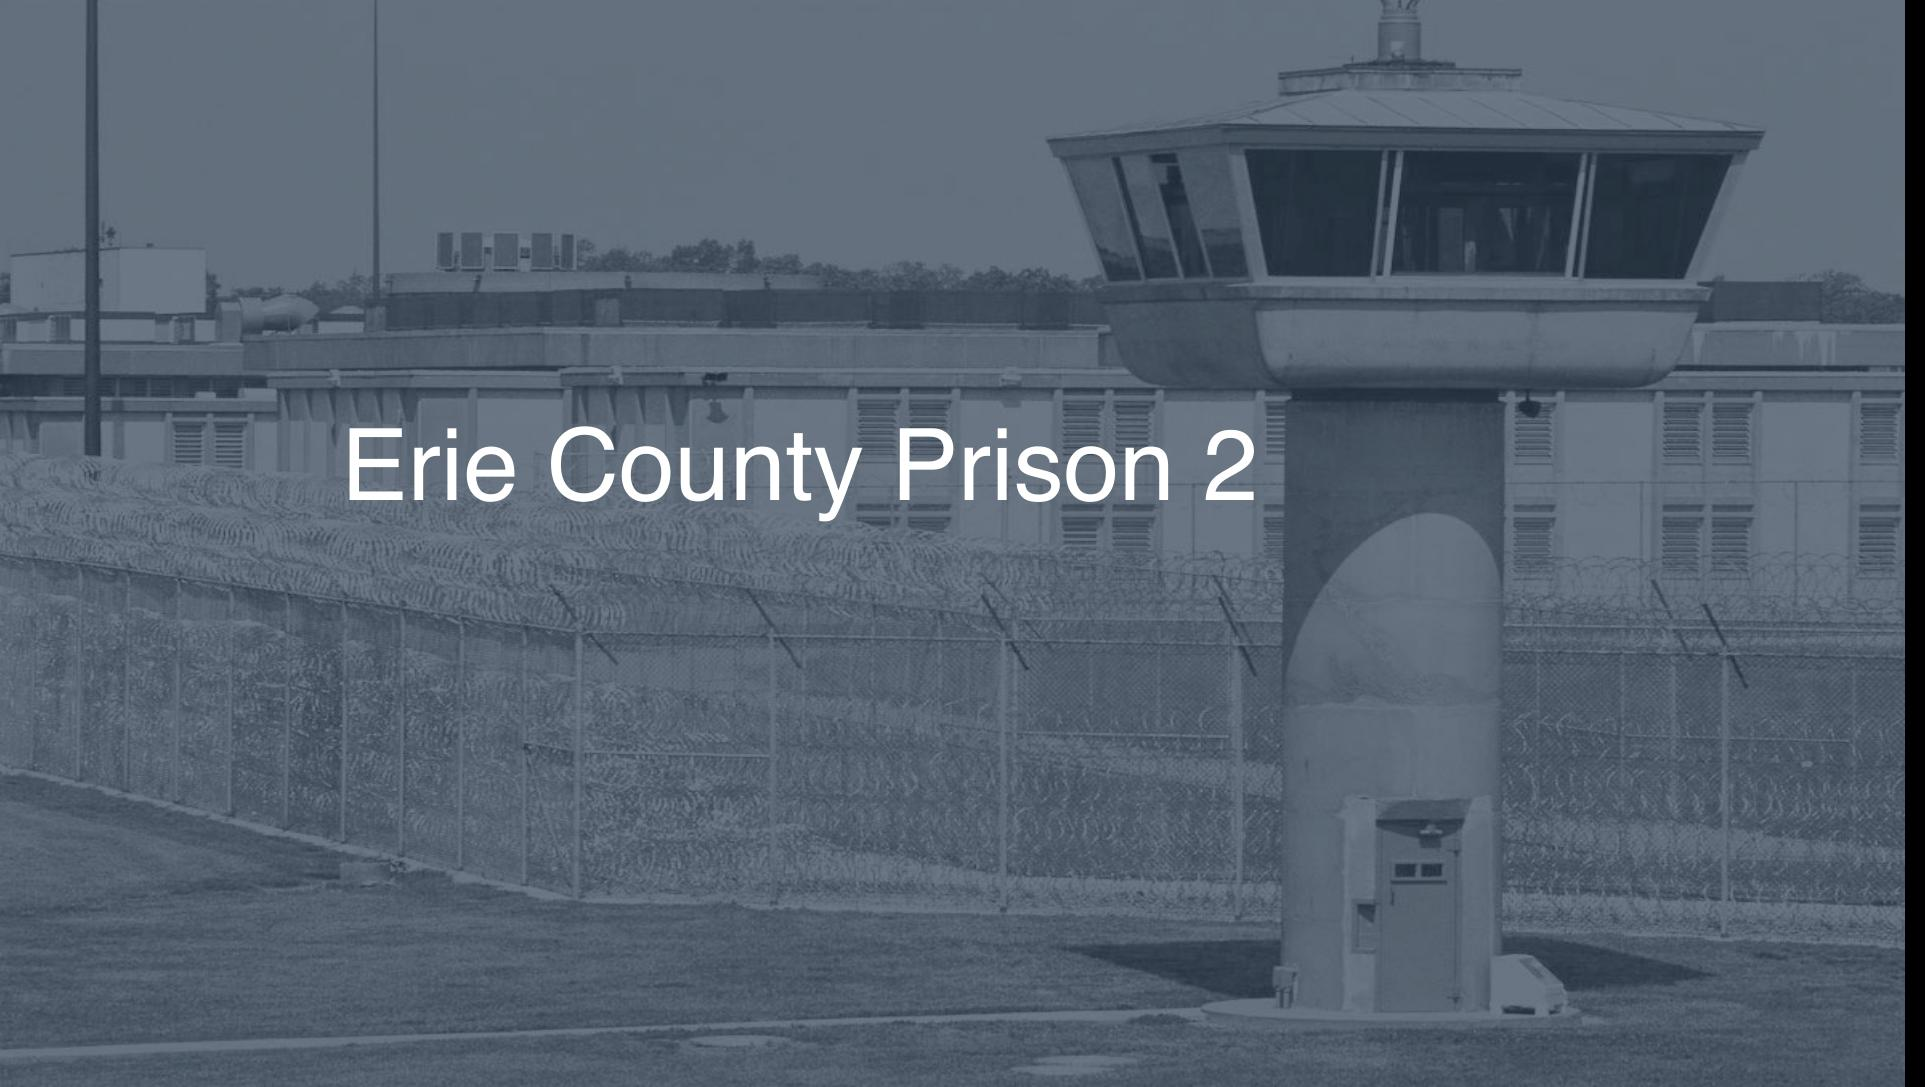 Erie County Prison | Pigeonly - Inmate Search, Locate